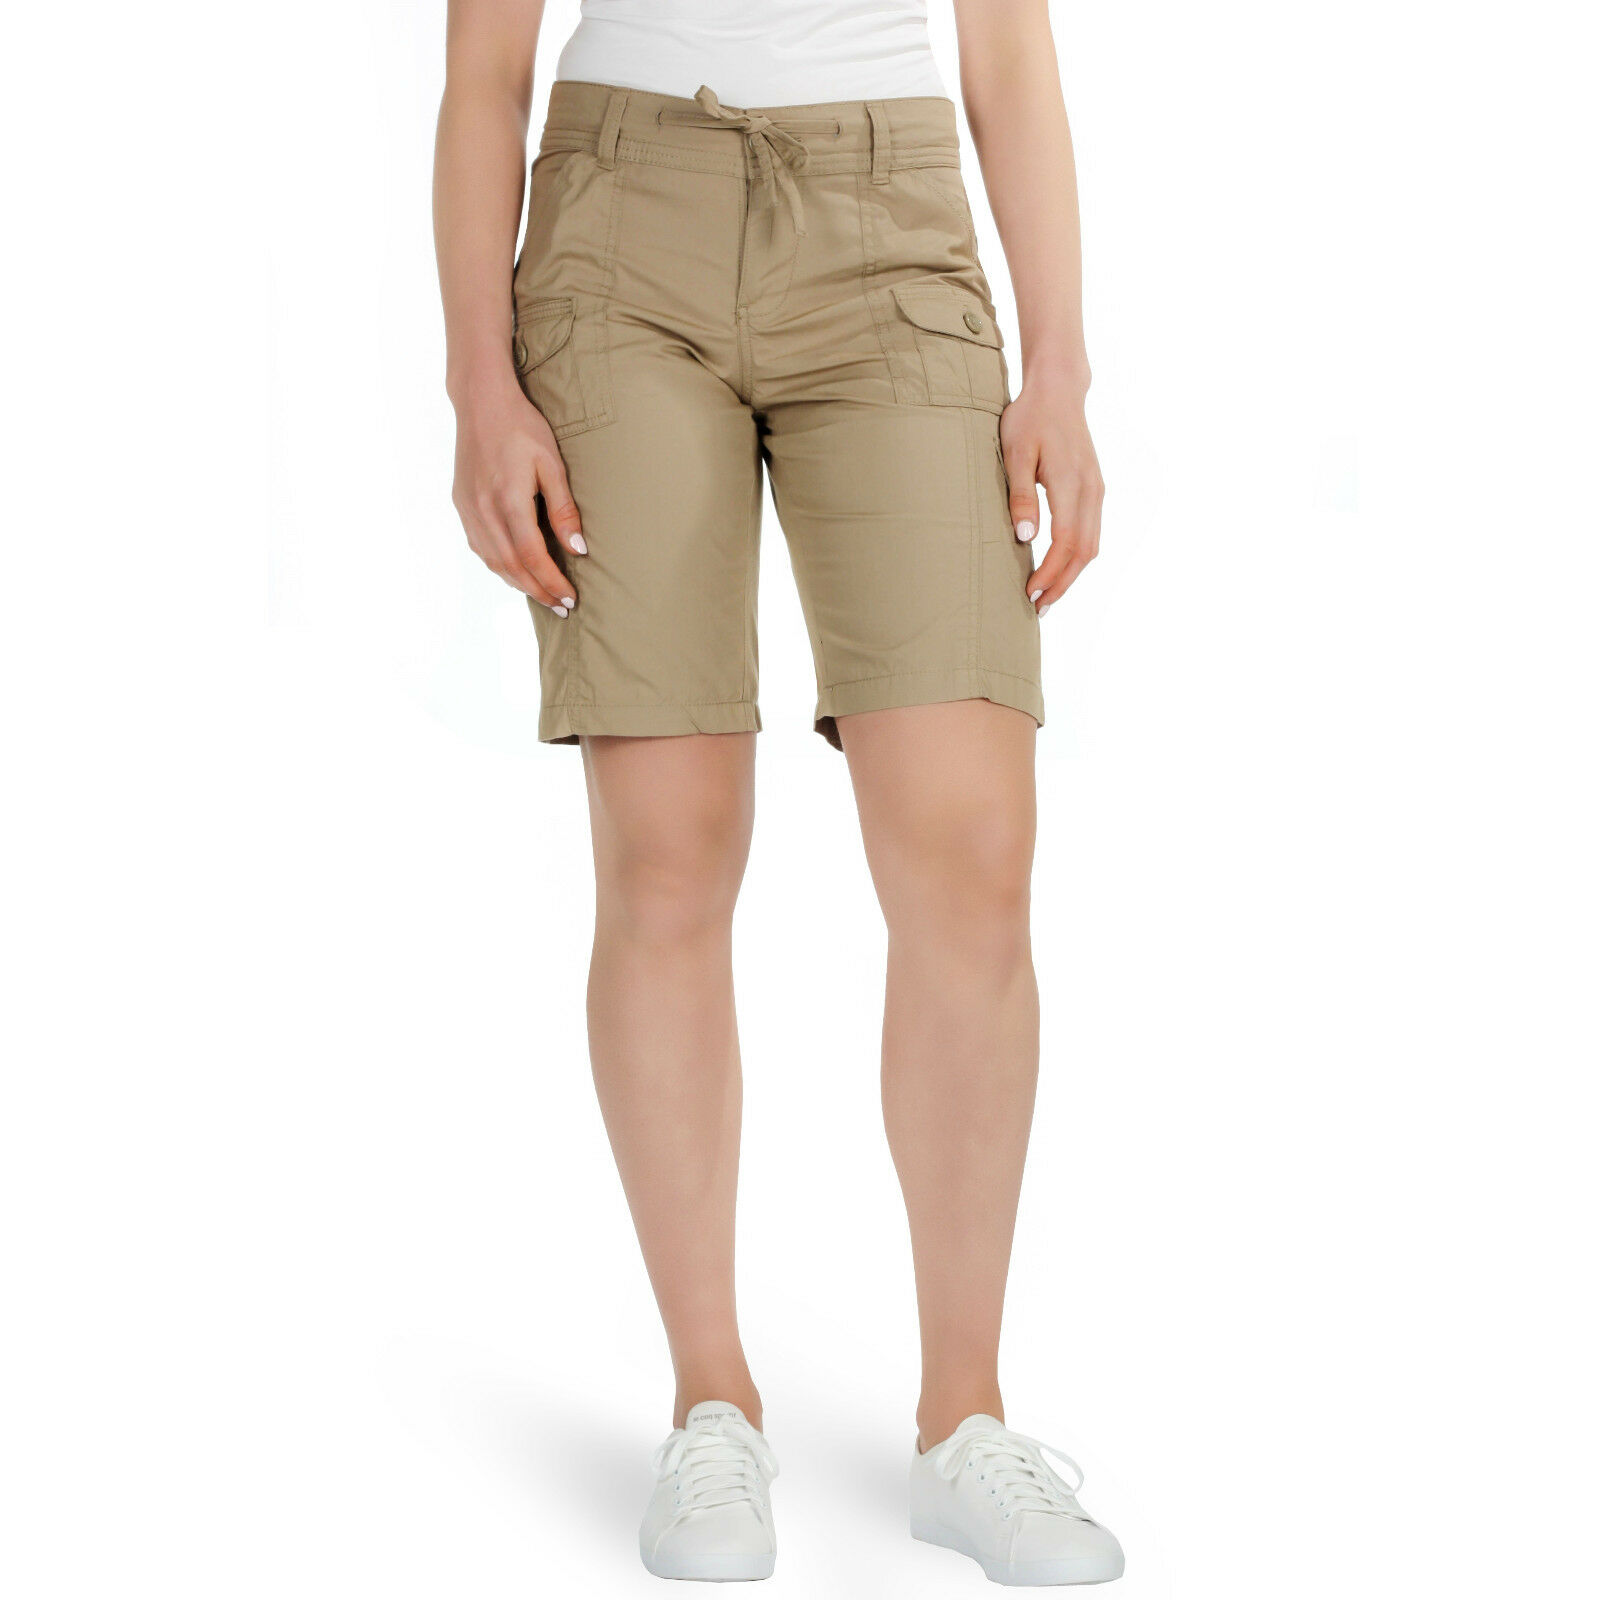 Casual Shorts For Women | www.pixshark.com - Images Galleries With A Bite!